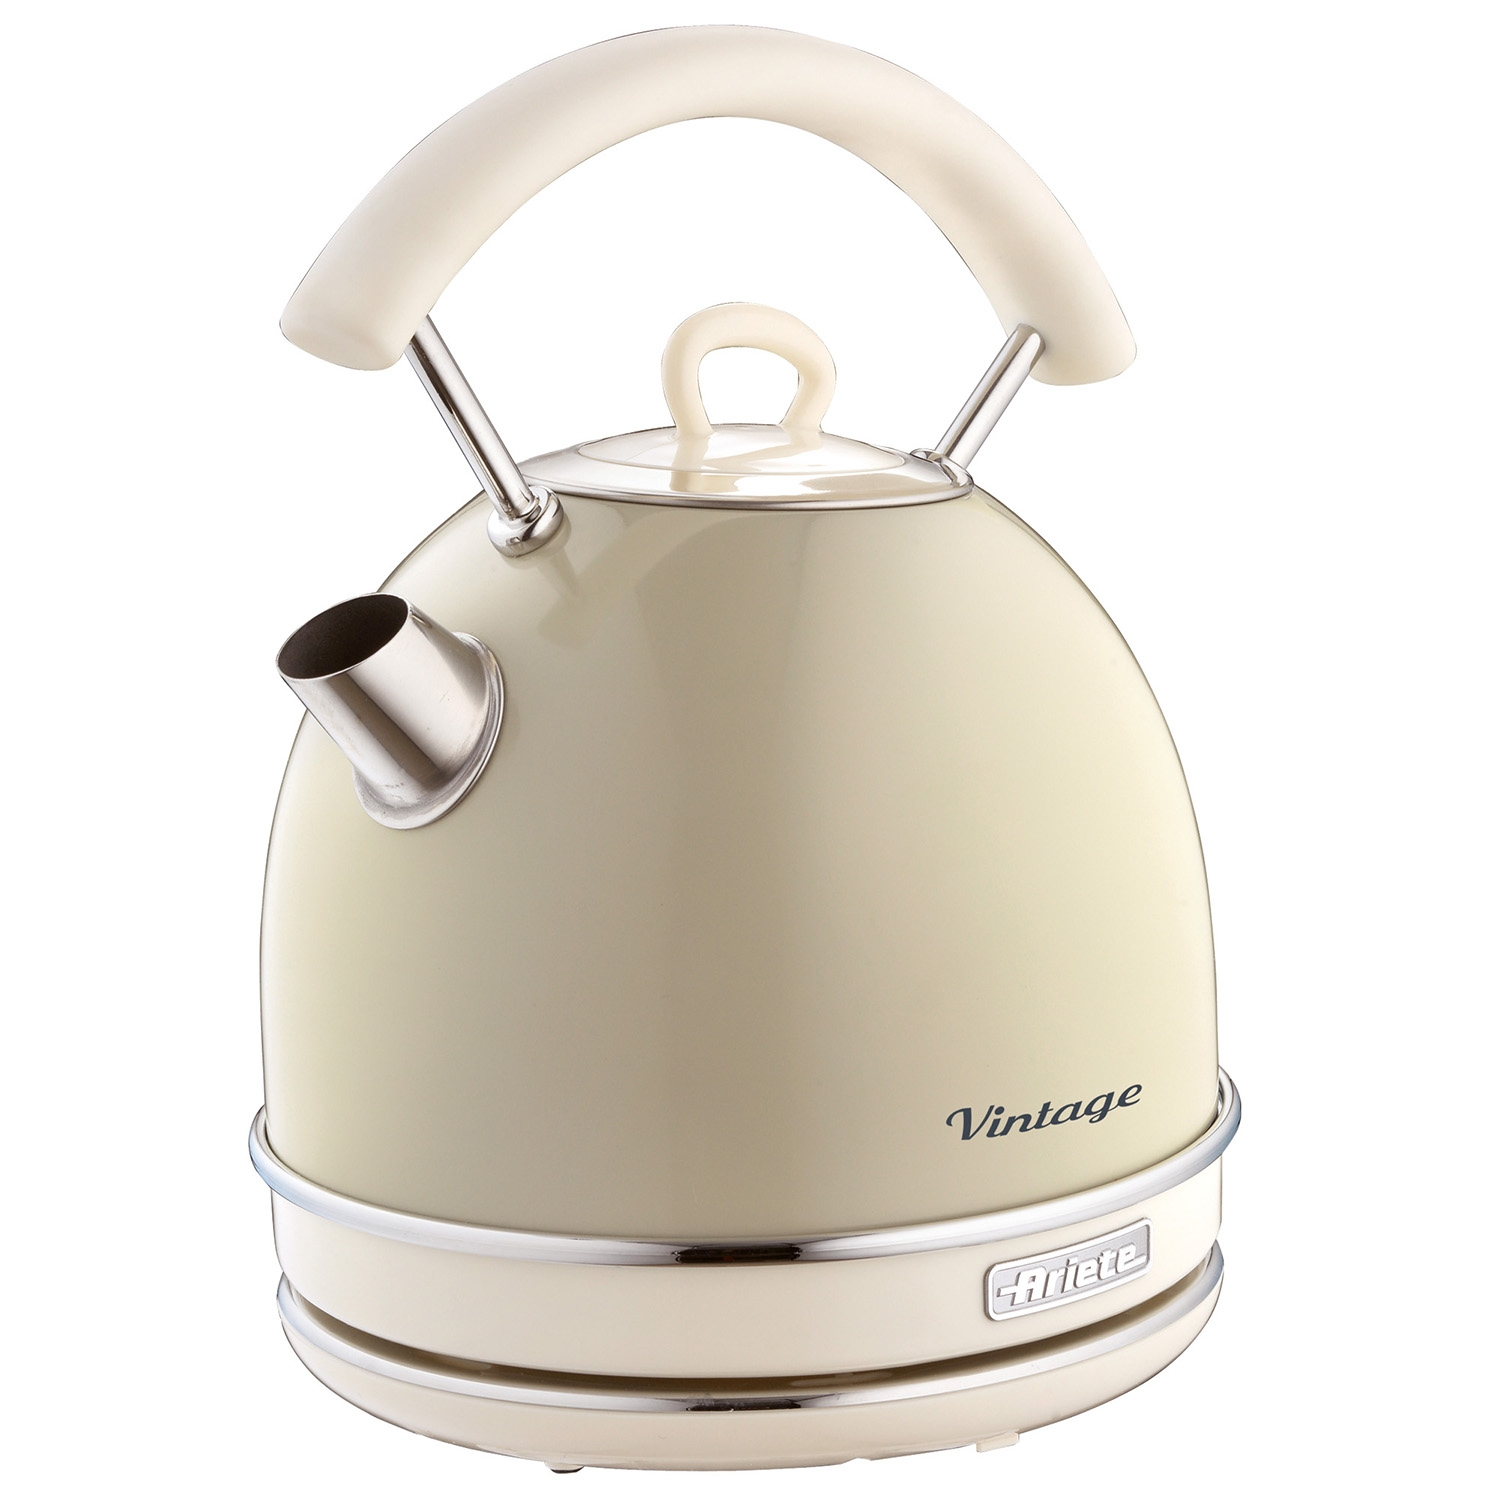 Image of Ariete Vintage Dome Kettle, Cream